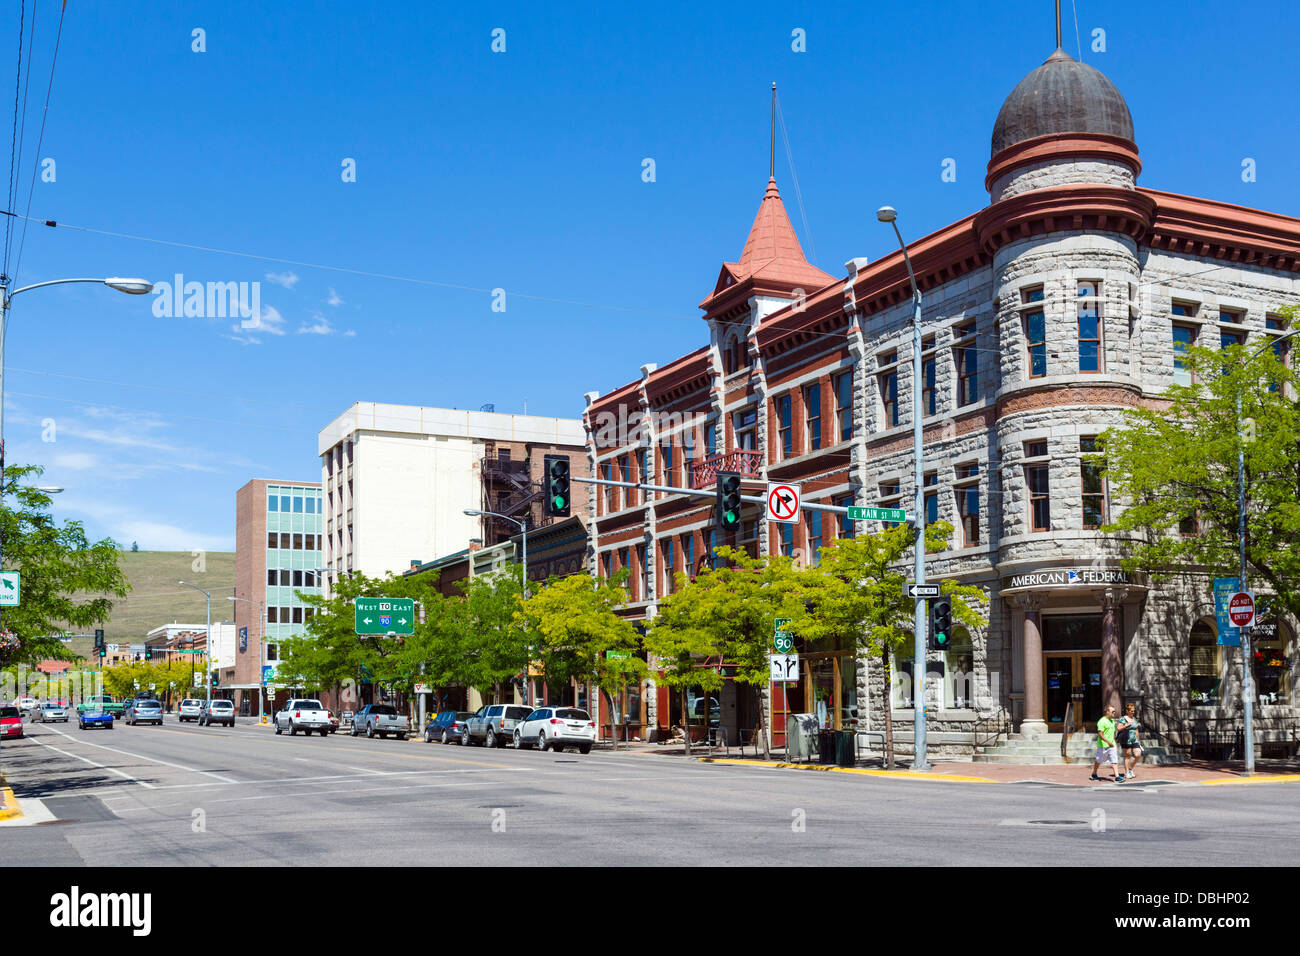 View down N Higgins Avenue at the intersection with Main Street in historic downtown Missoula, Montana, USA Stock Photo